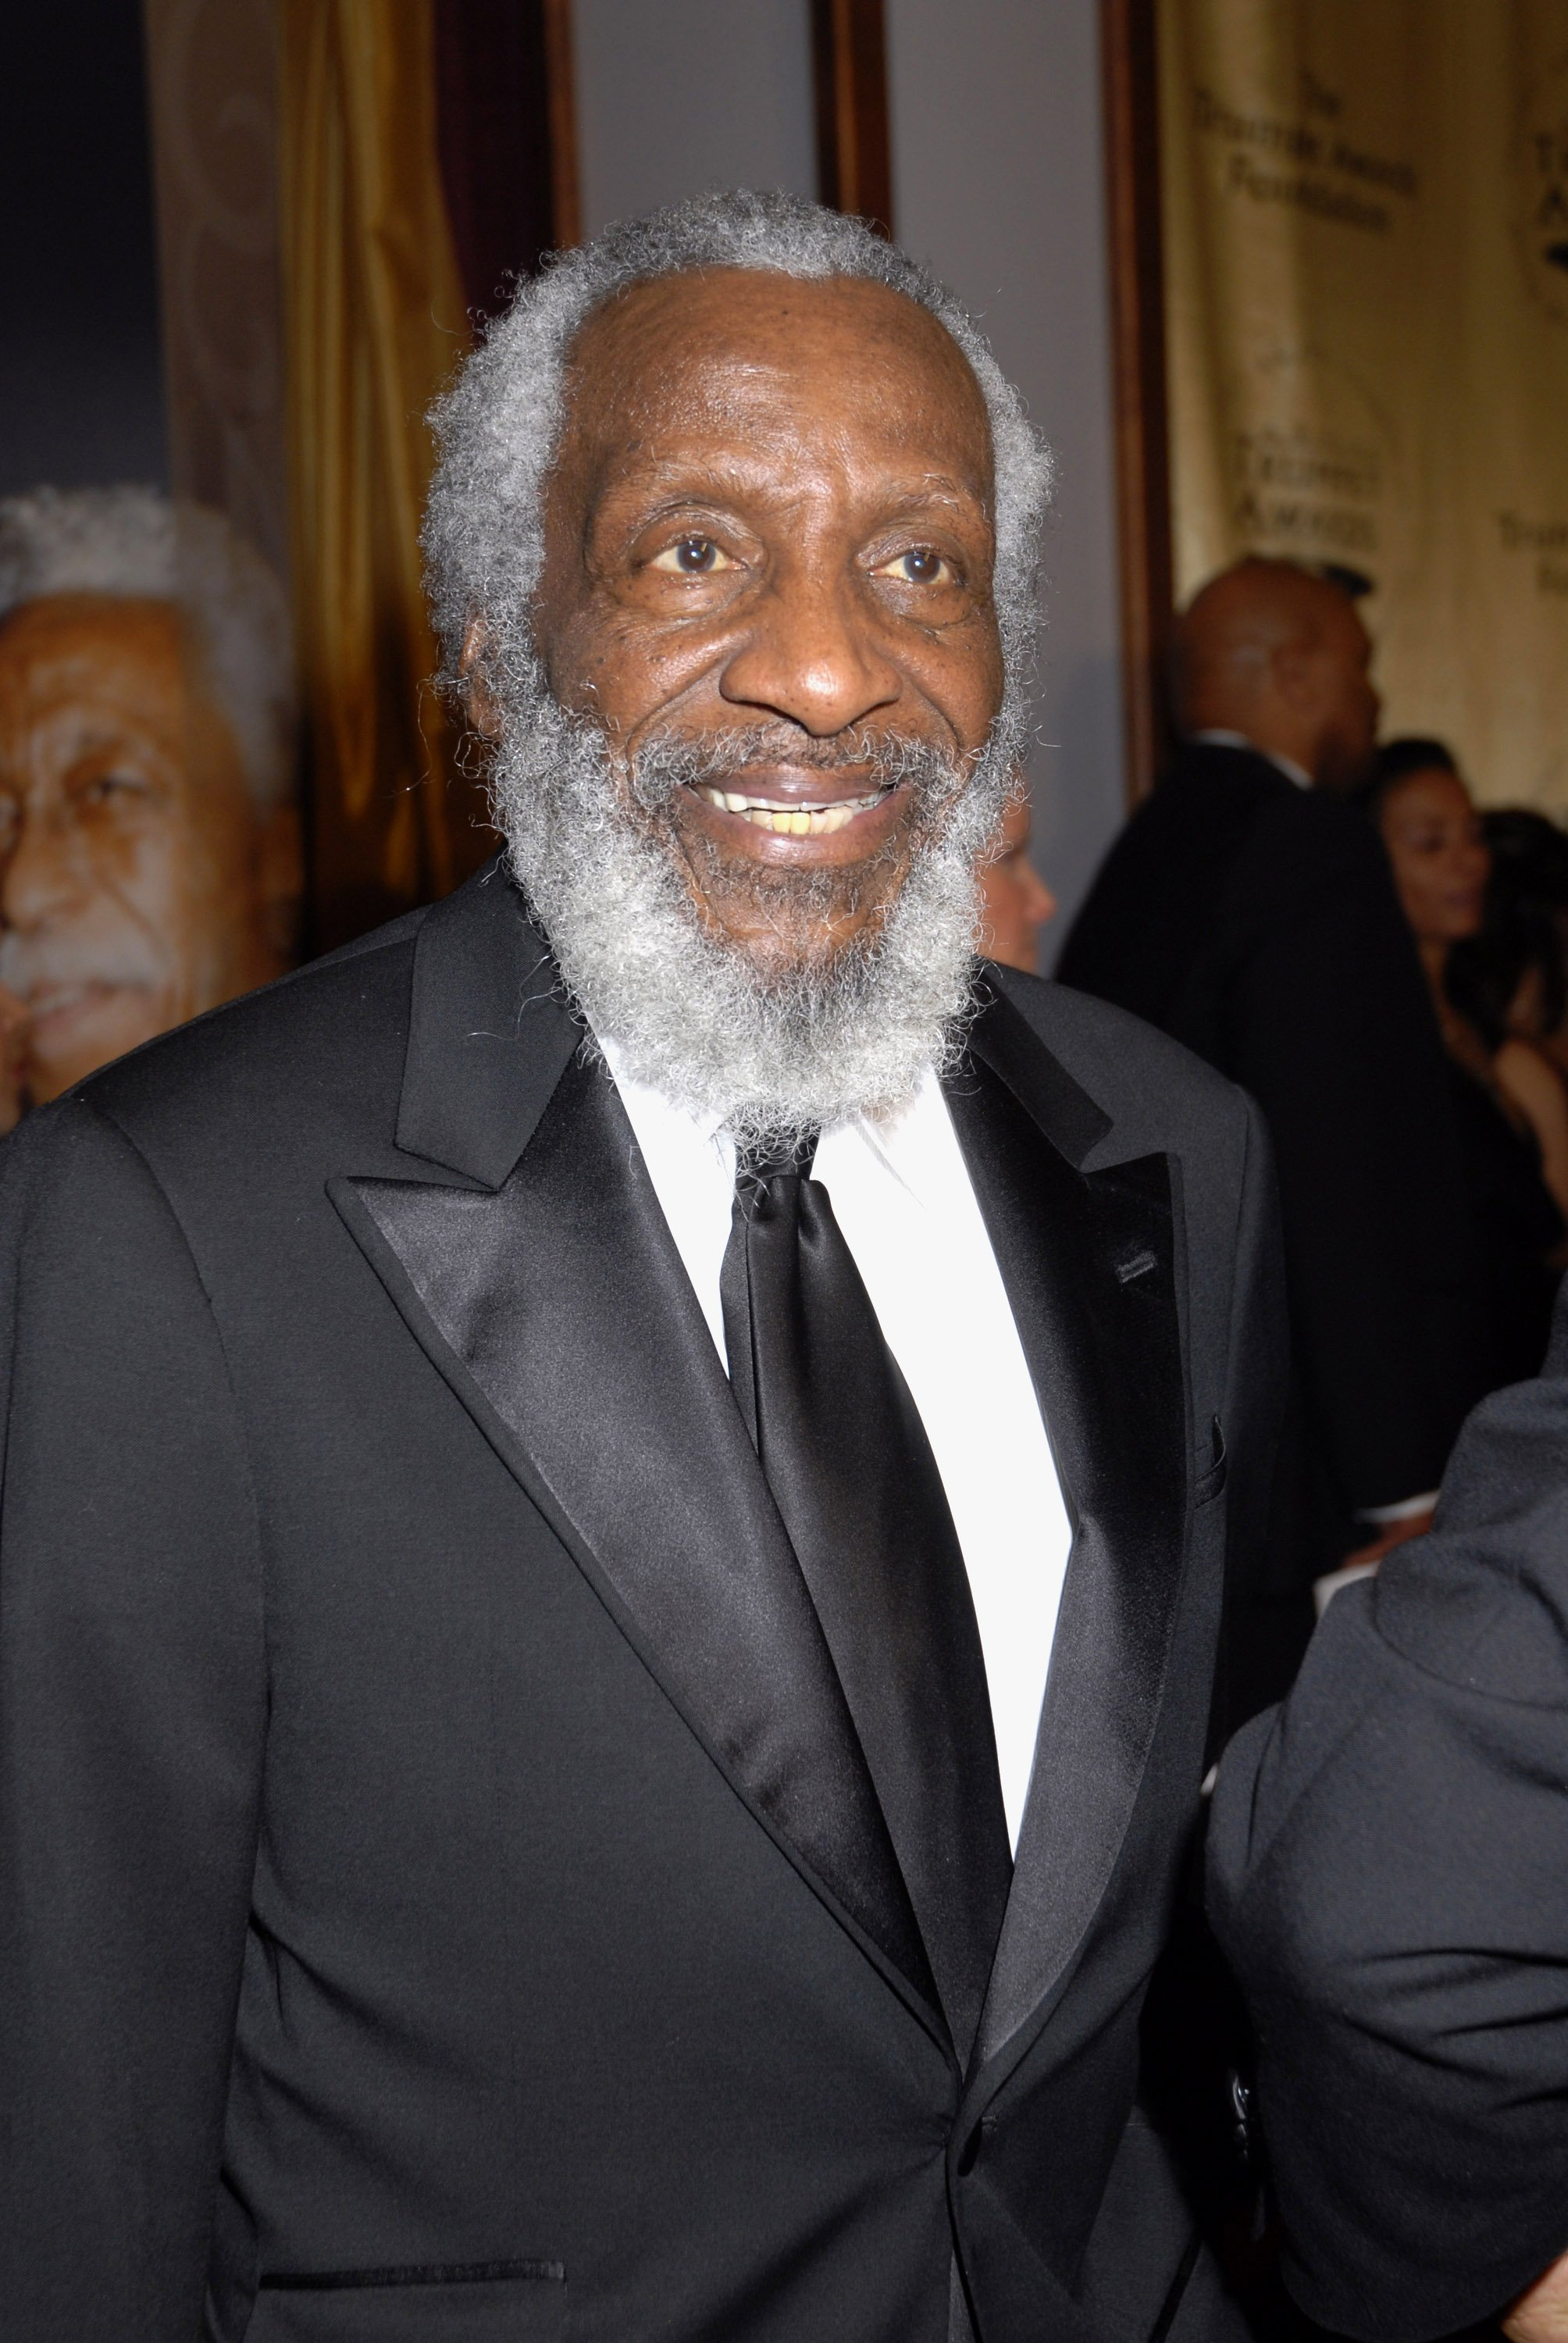 Dick Gregory during 2007 Trumpet Awards Celebrate African American Achievement at Bellagio Hotel in Las Vegas, Nevada, United States on 22 January 2007.   Photo: Getty Images